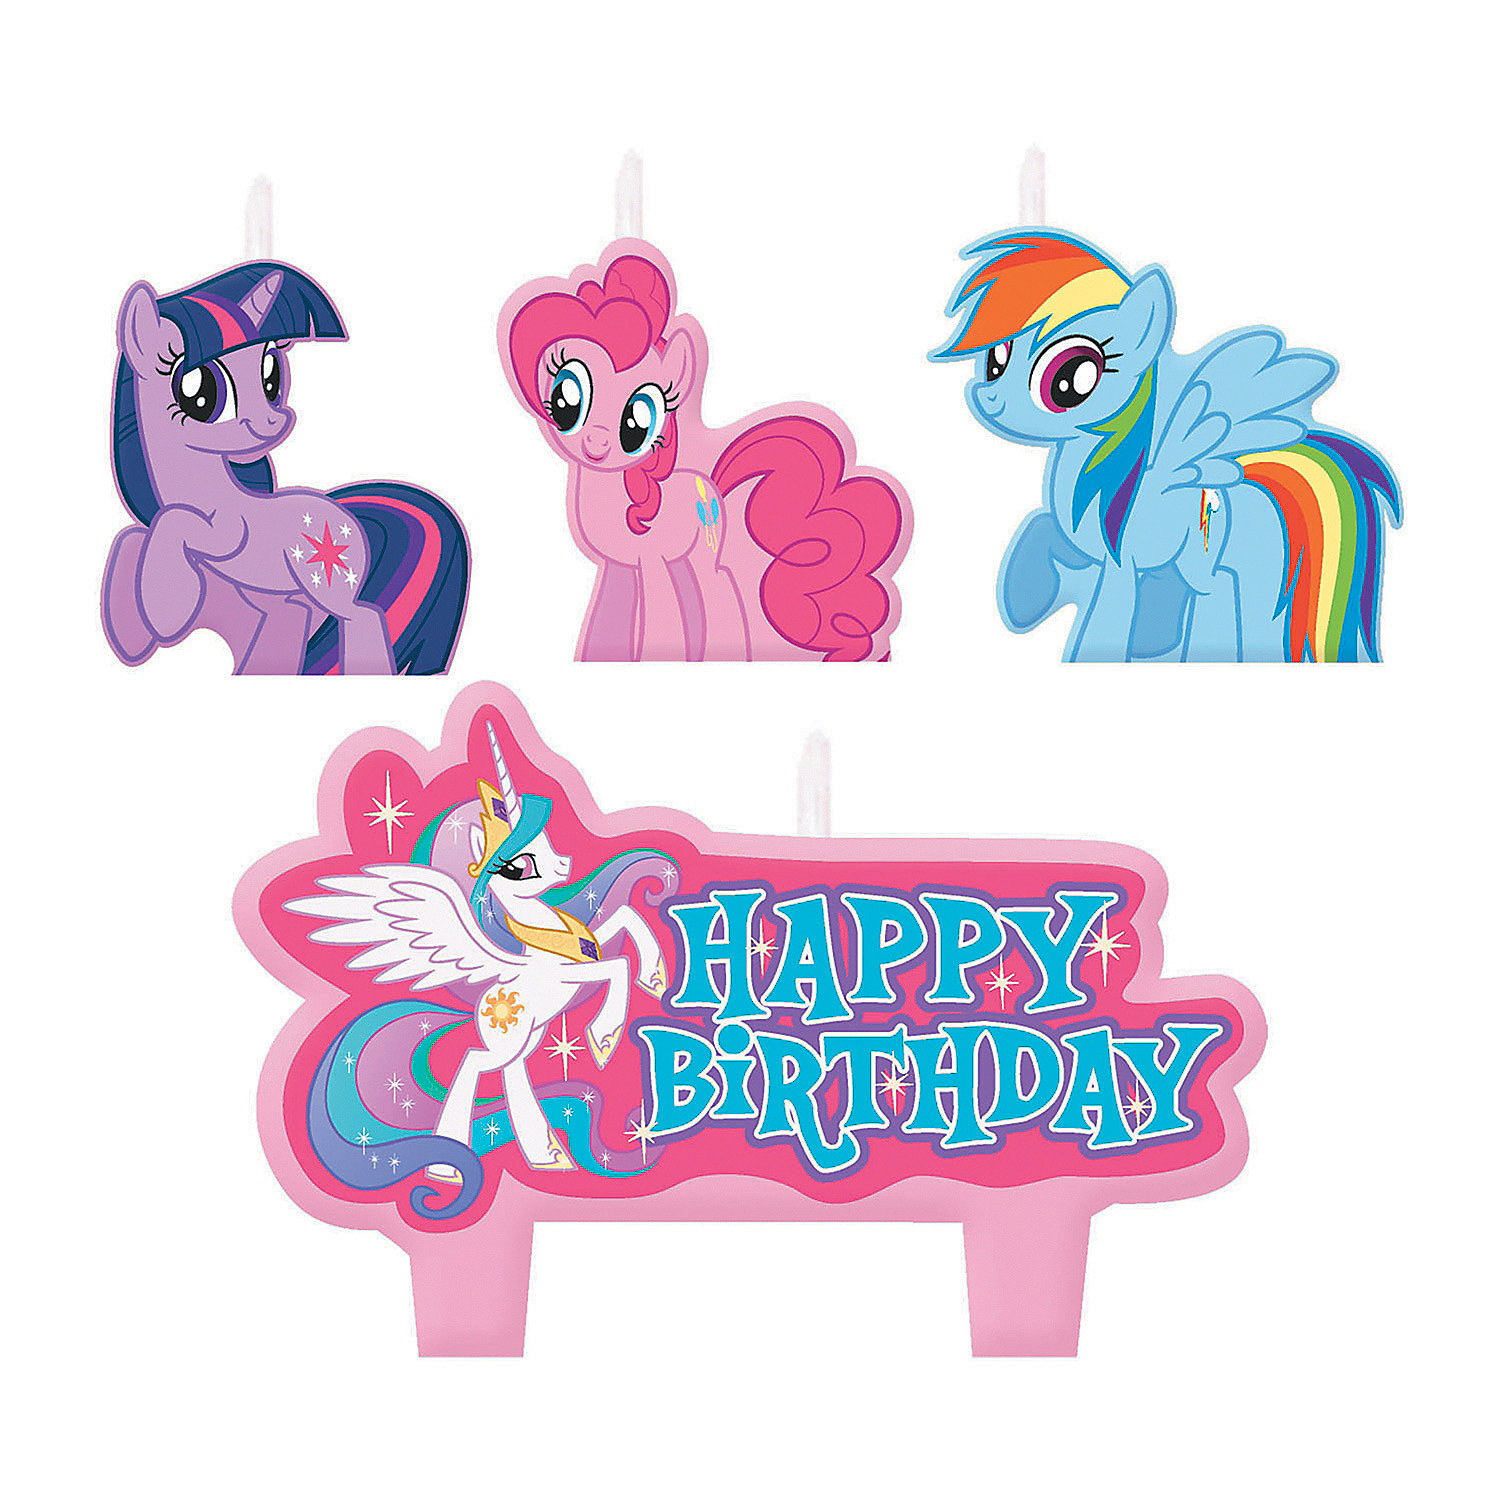 IN-13612146 My Little Pony Friendship Is Magic Birthday Candles 2PK